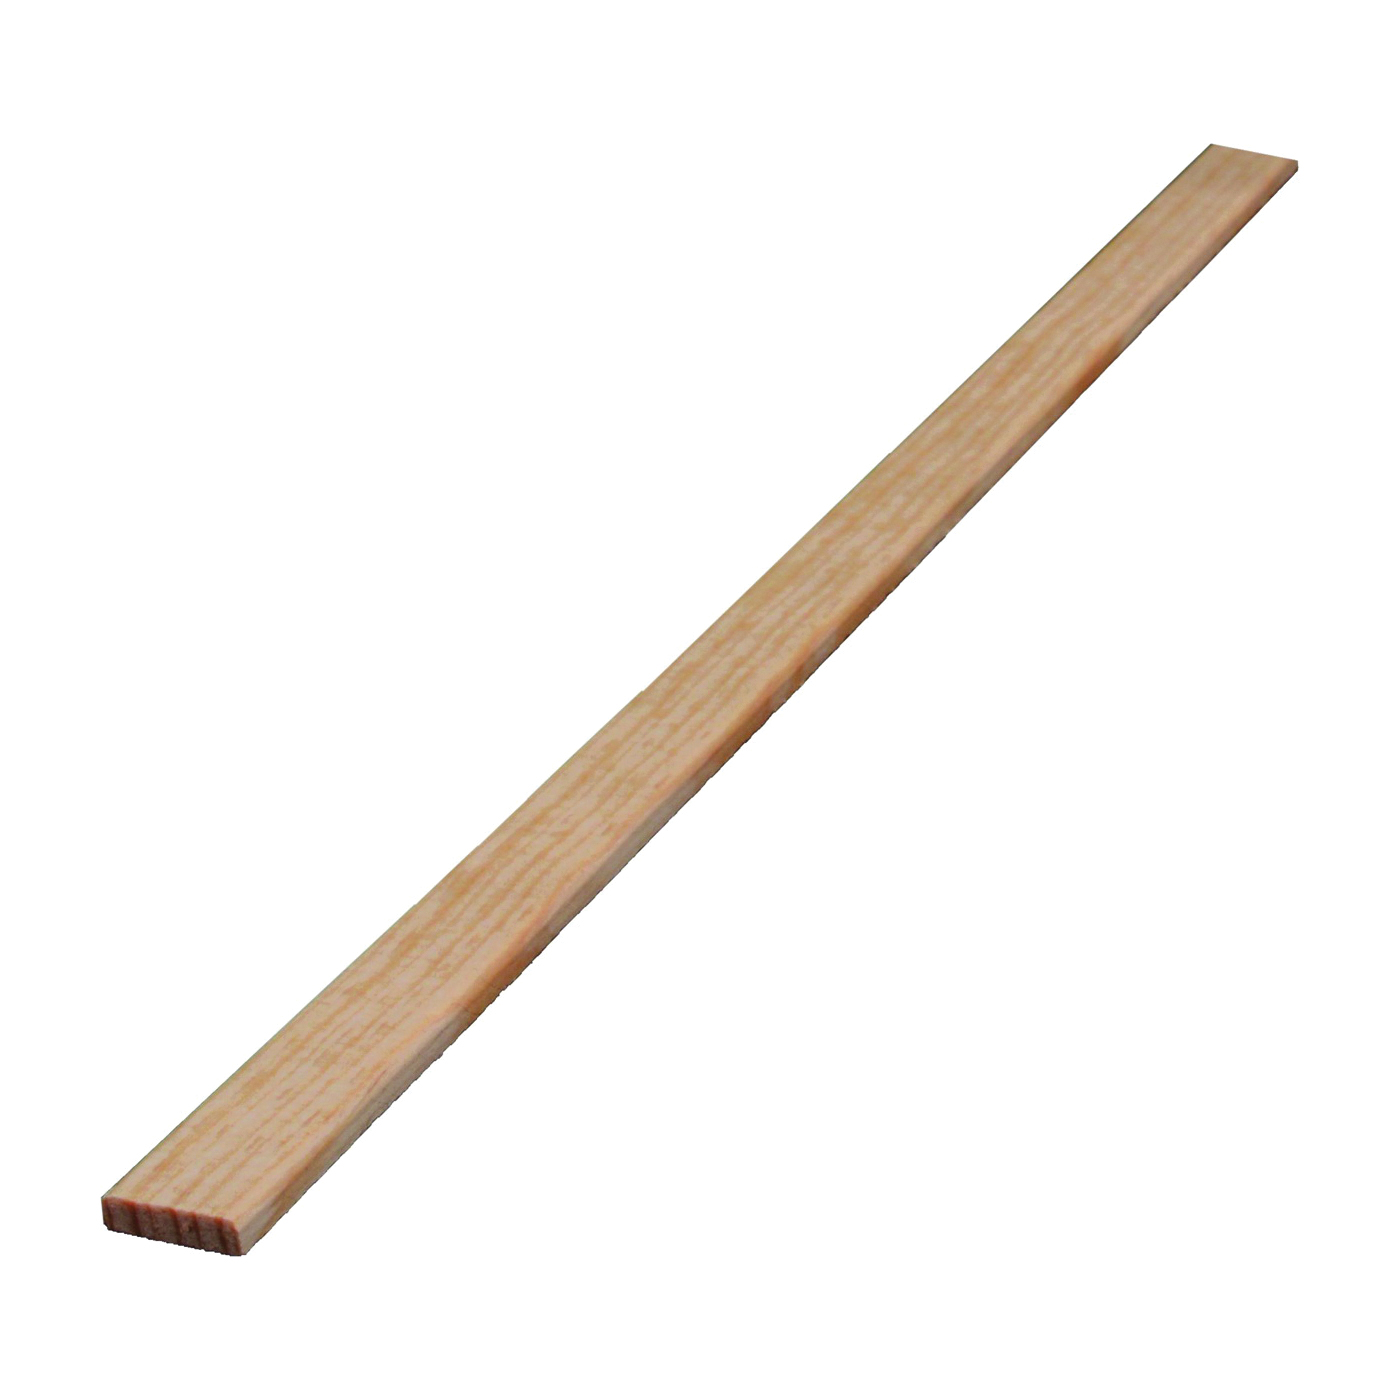 Picture of ALEXANDRIA Moulding 0W142-20096C1 Molding Screen Trim, 96 in L, 3/4 in W, Pine